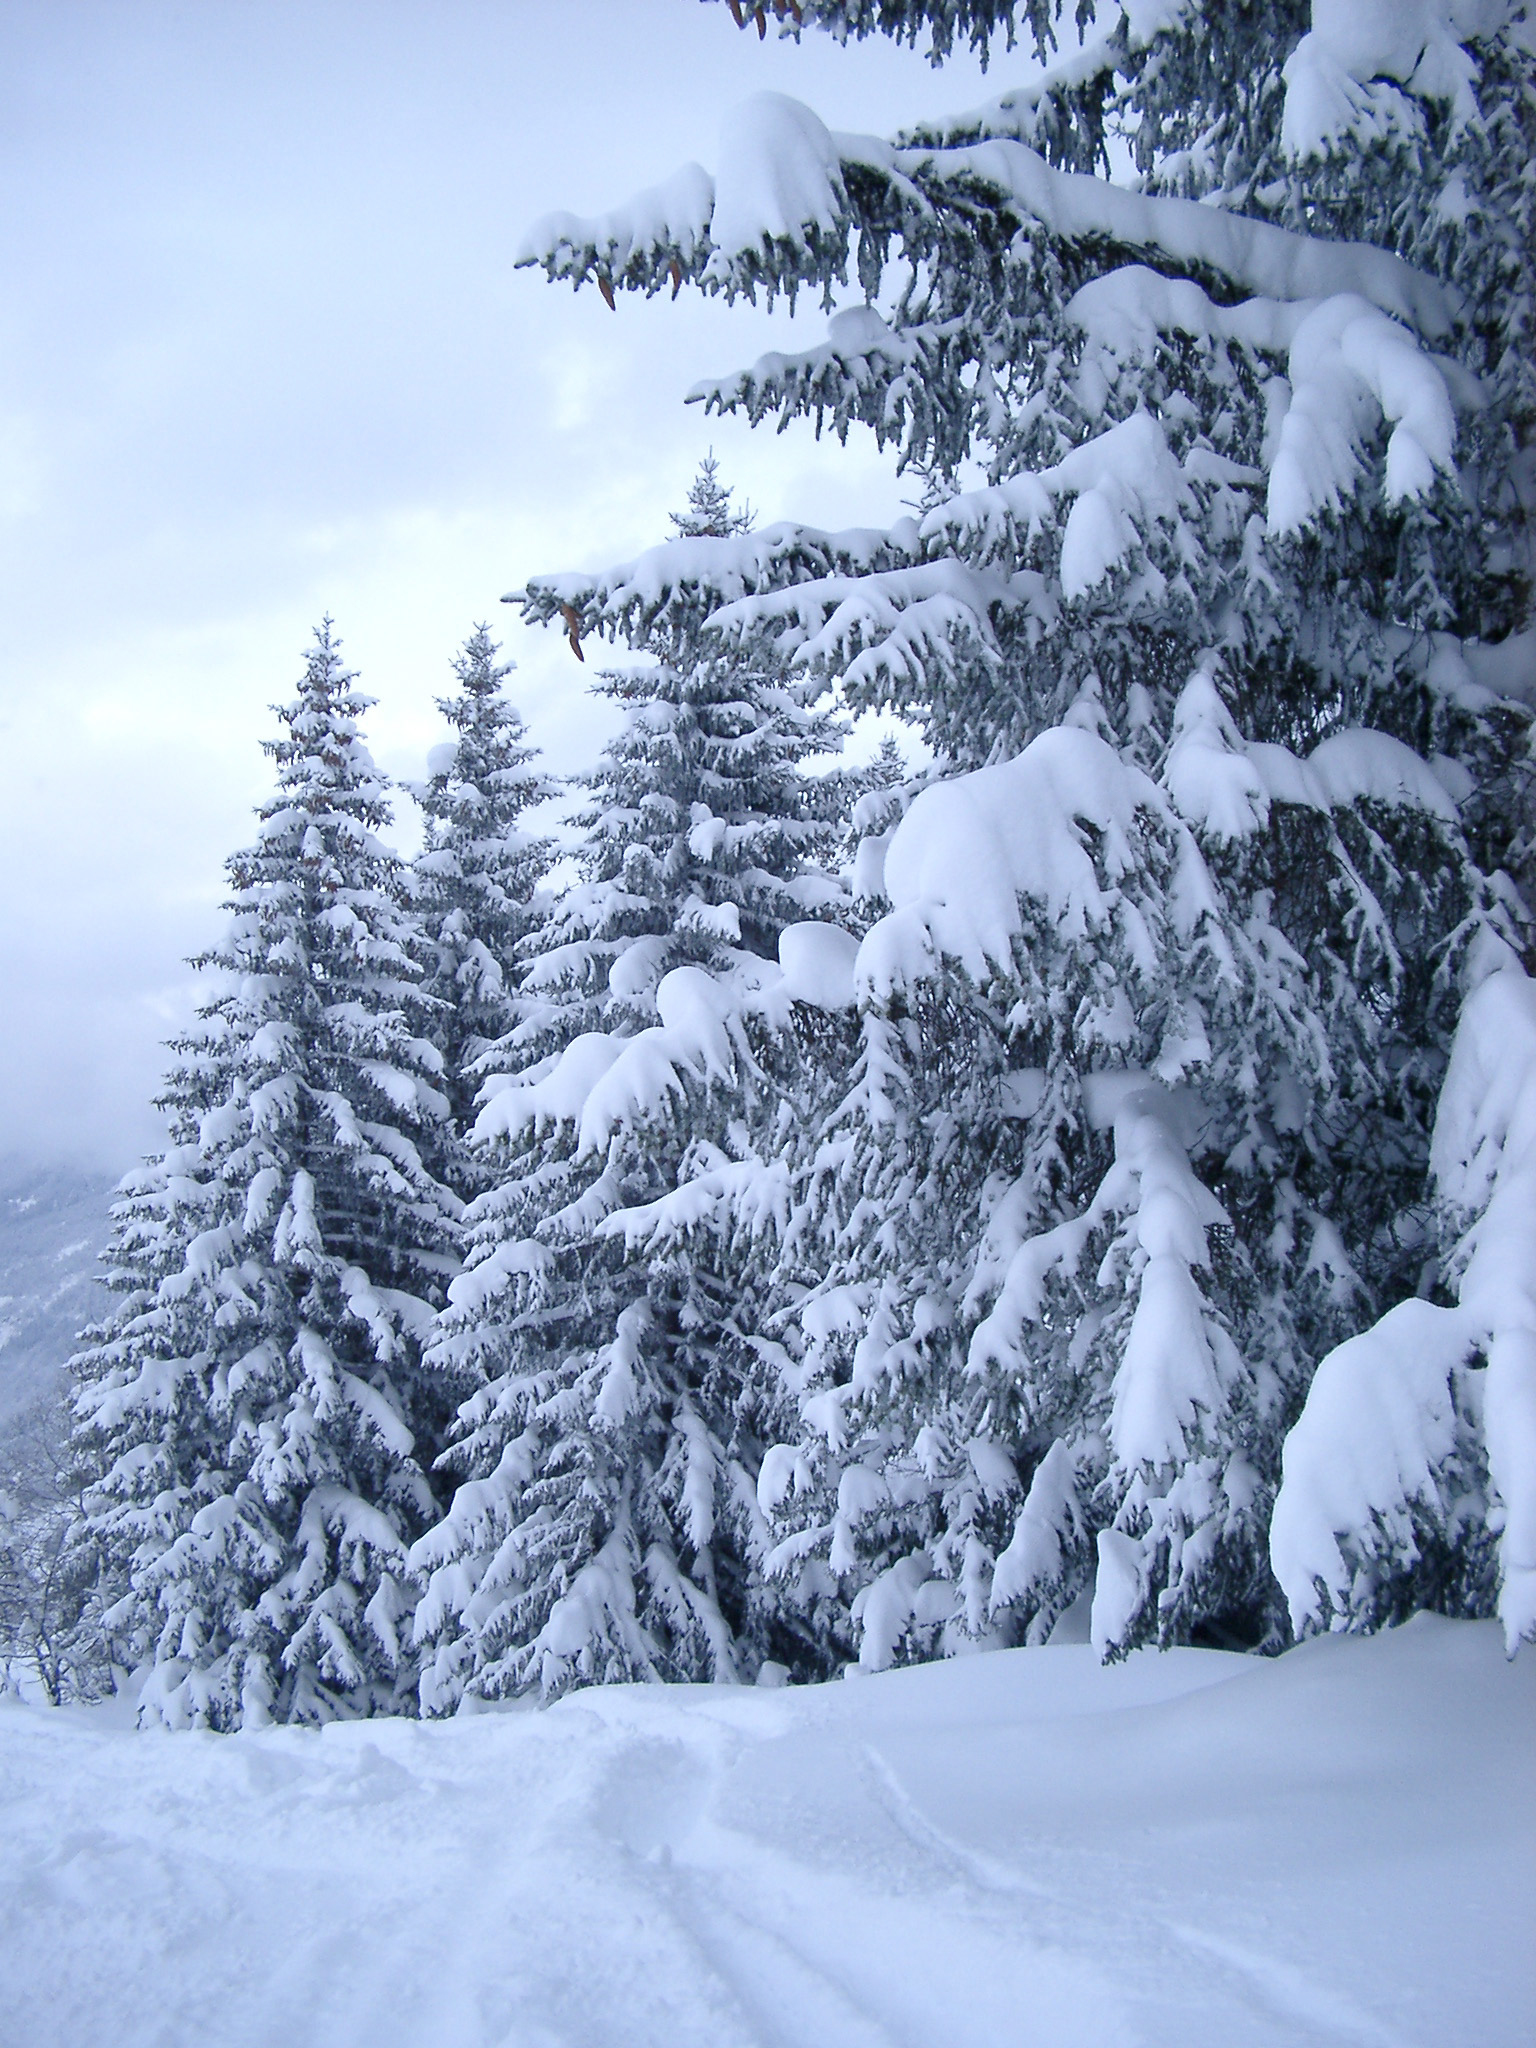 Free Stock photo of Plenty Tall Fir Trees in the Snow ...